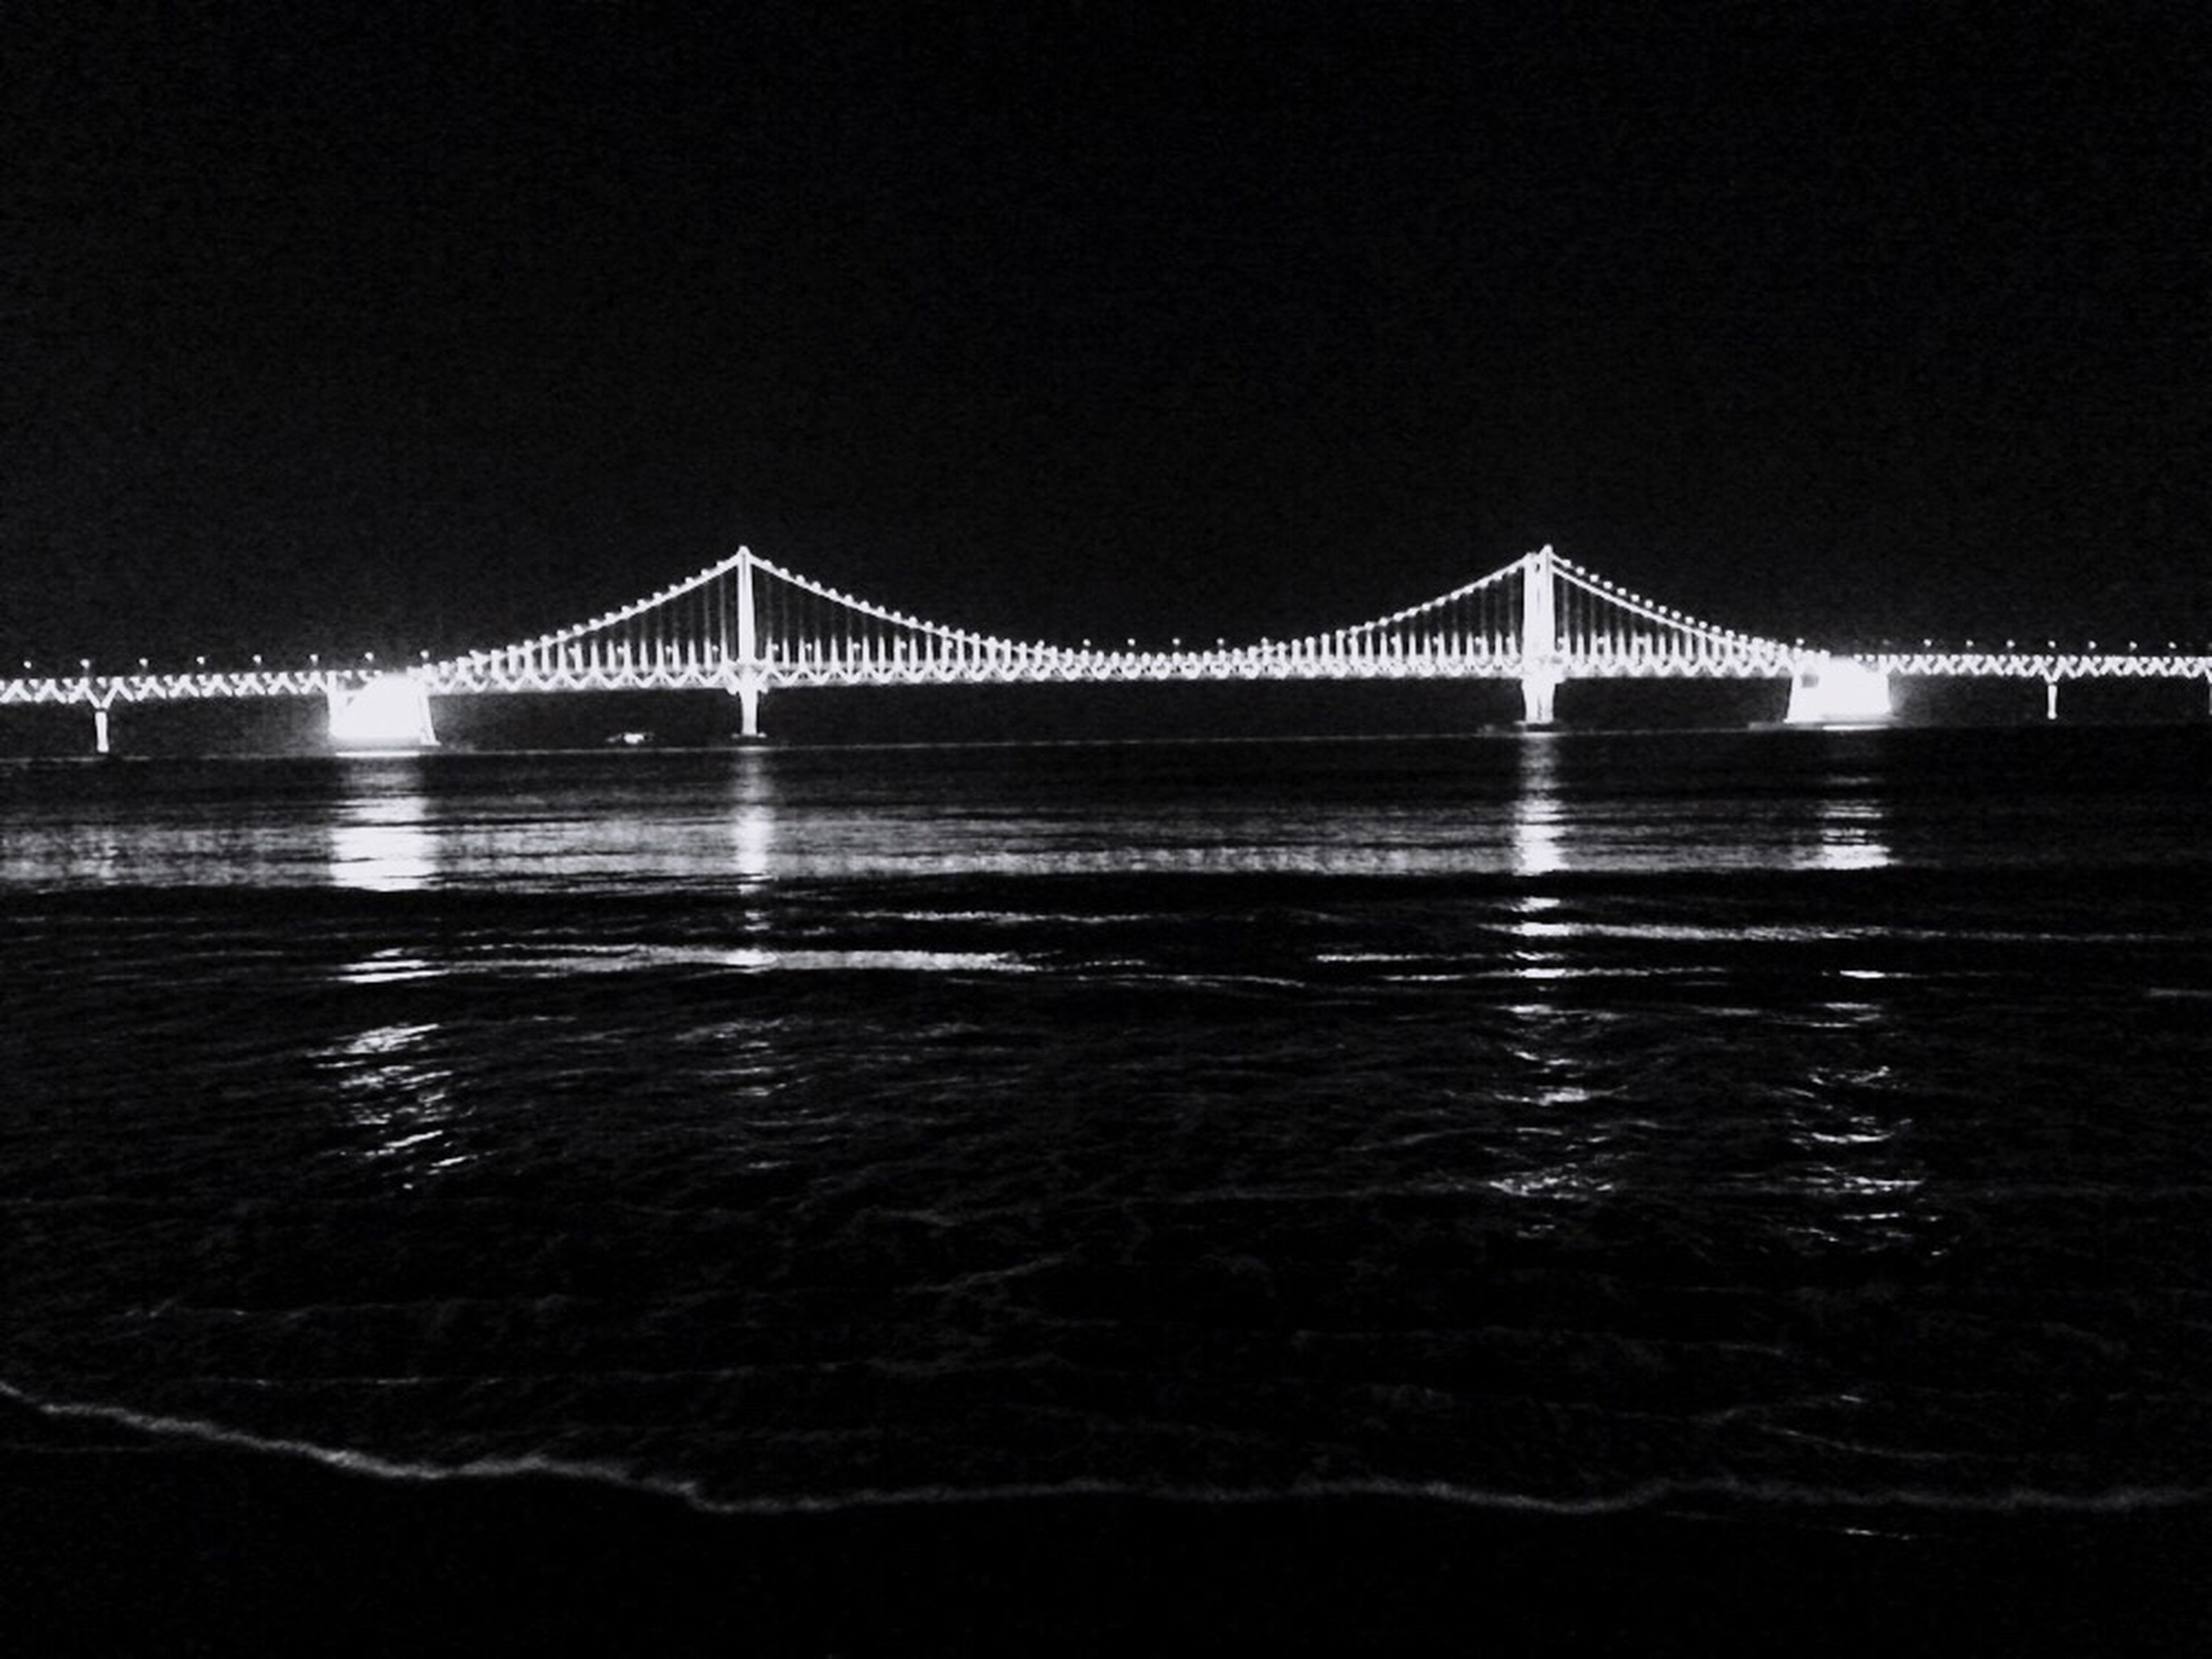 connection, bridge - man made structure, built structure, architecture, water, engineering, bridge, river, illuminated, suspension bridge, night, clear sky, waterfront, travel destinations, transportation, long, reflection, copy space, famous place, sea